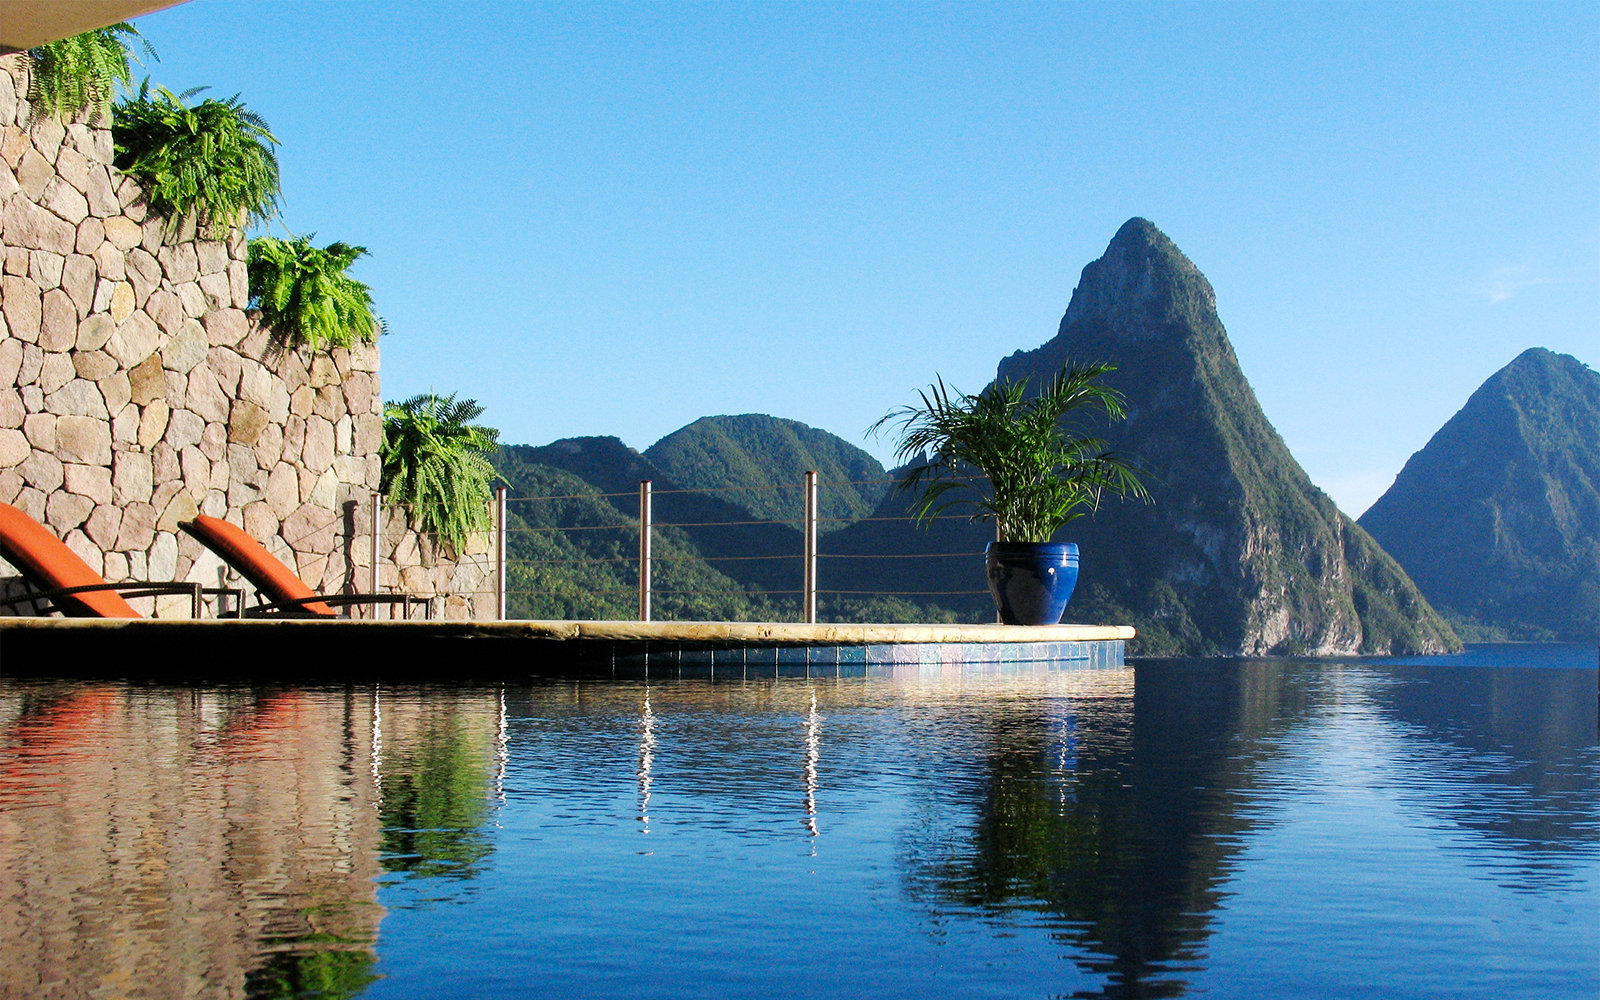 No. 2: Jade Mountain, St. Lucia